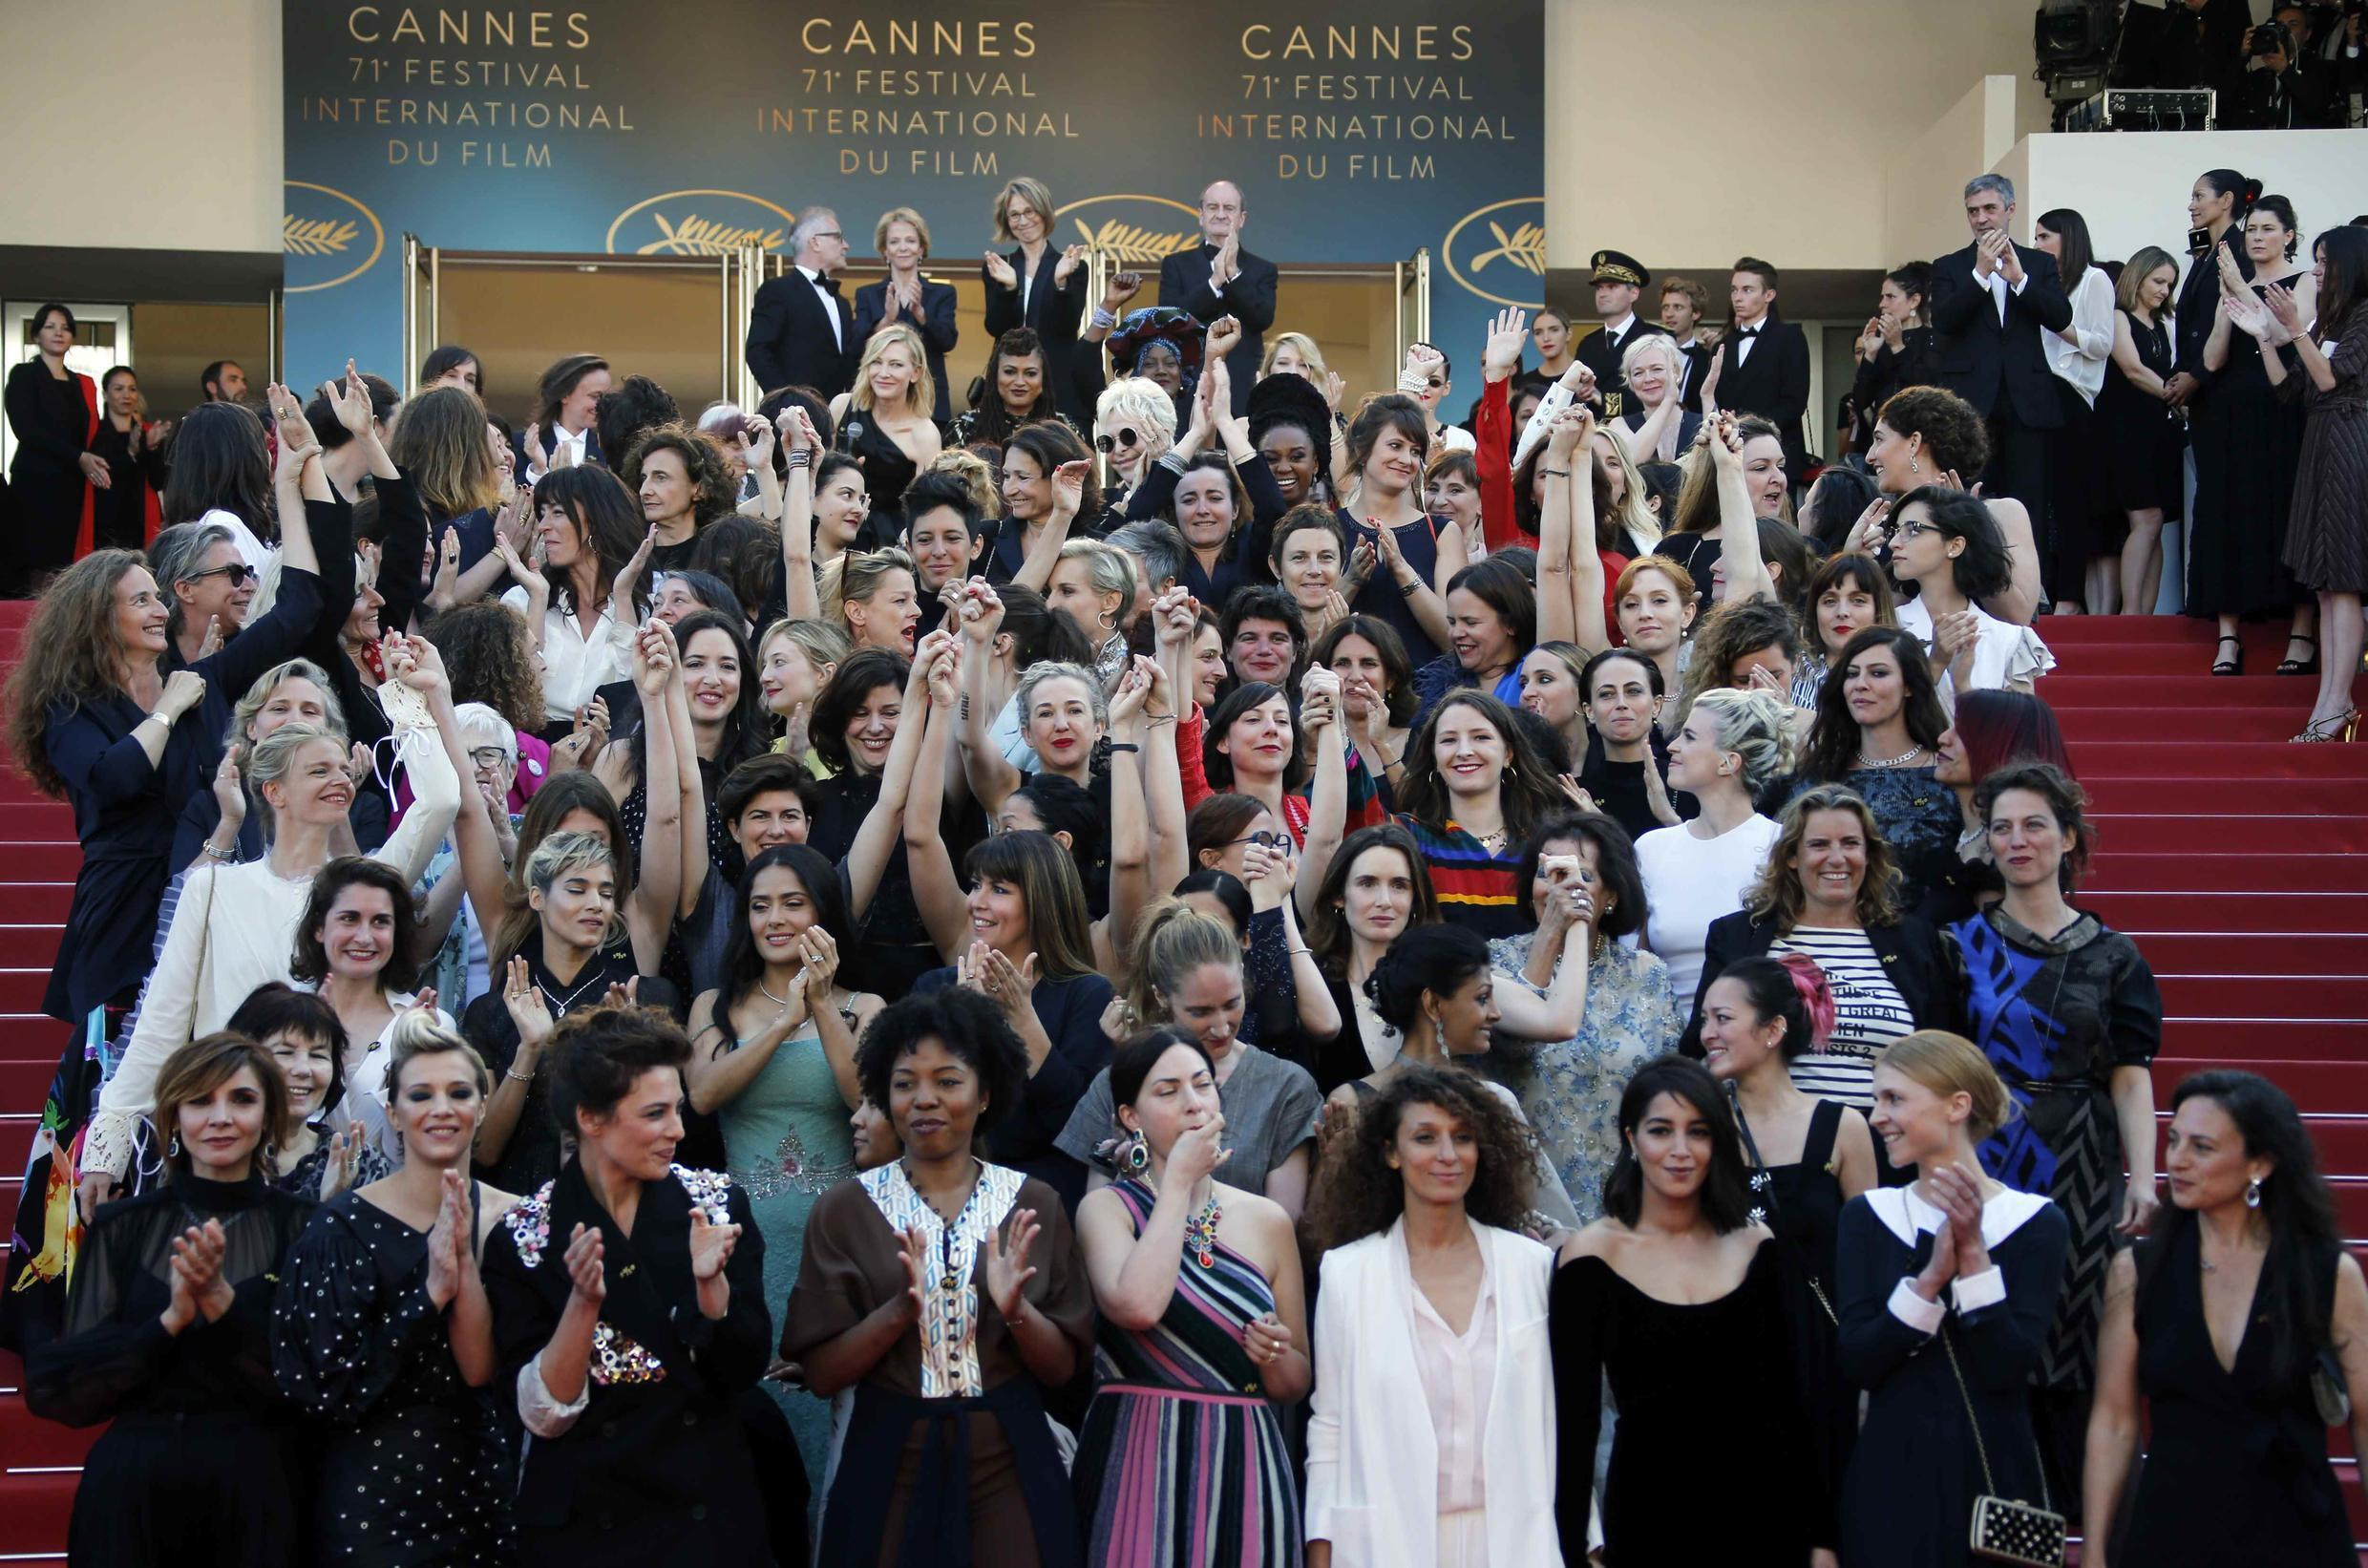 The 83 women at the Cannes Film Festival